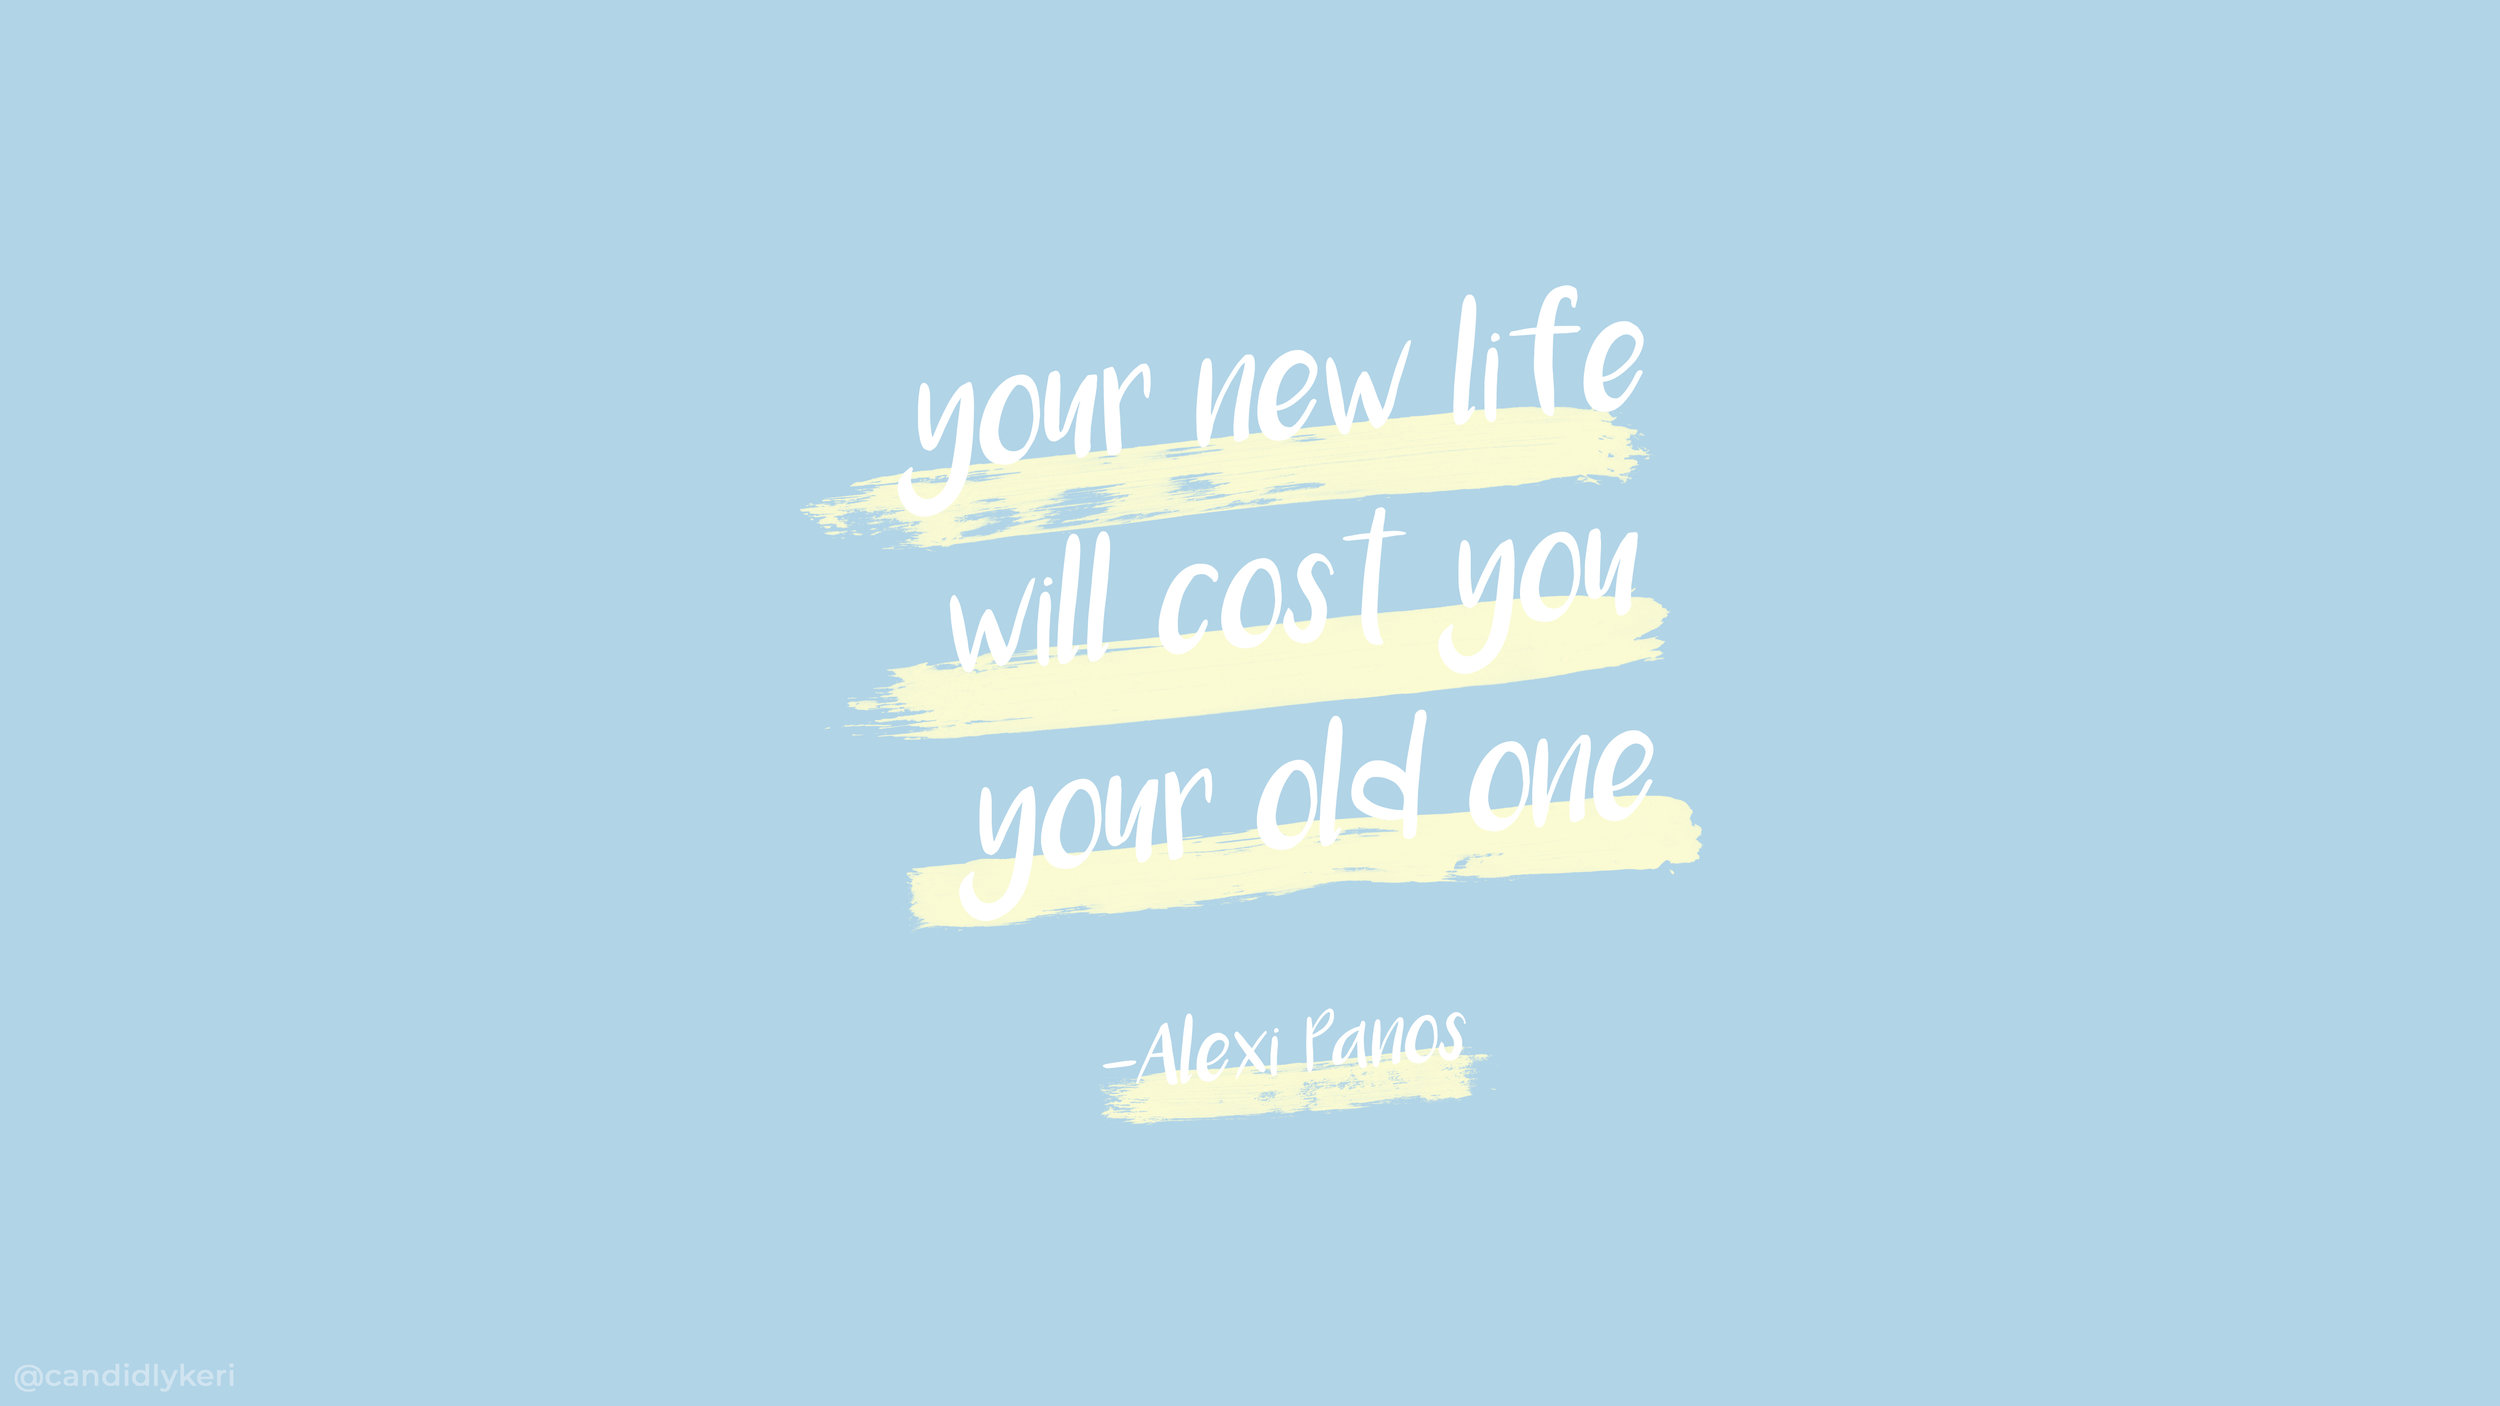 Your new life will cost you your old one